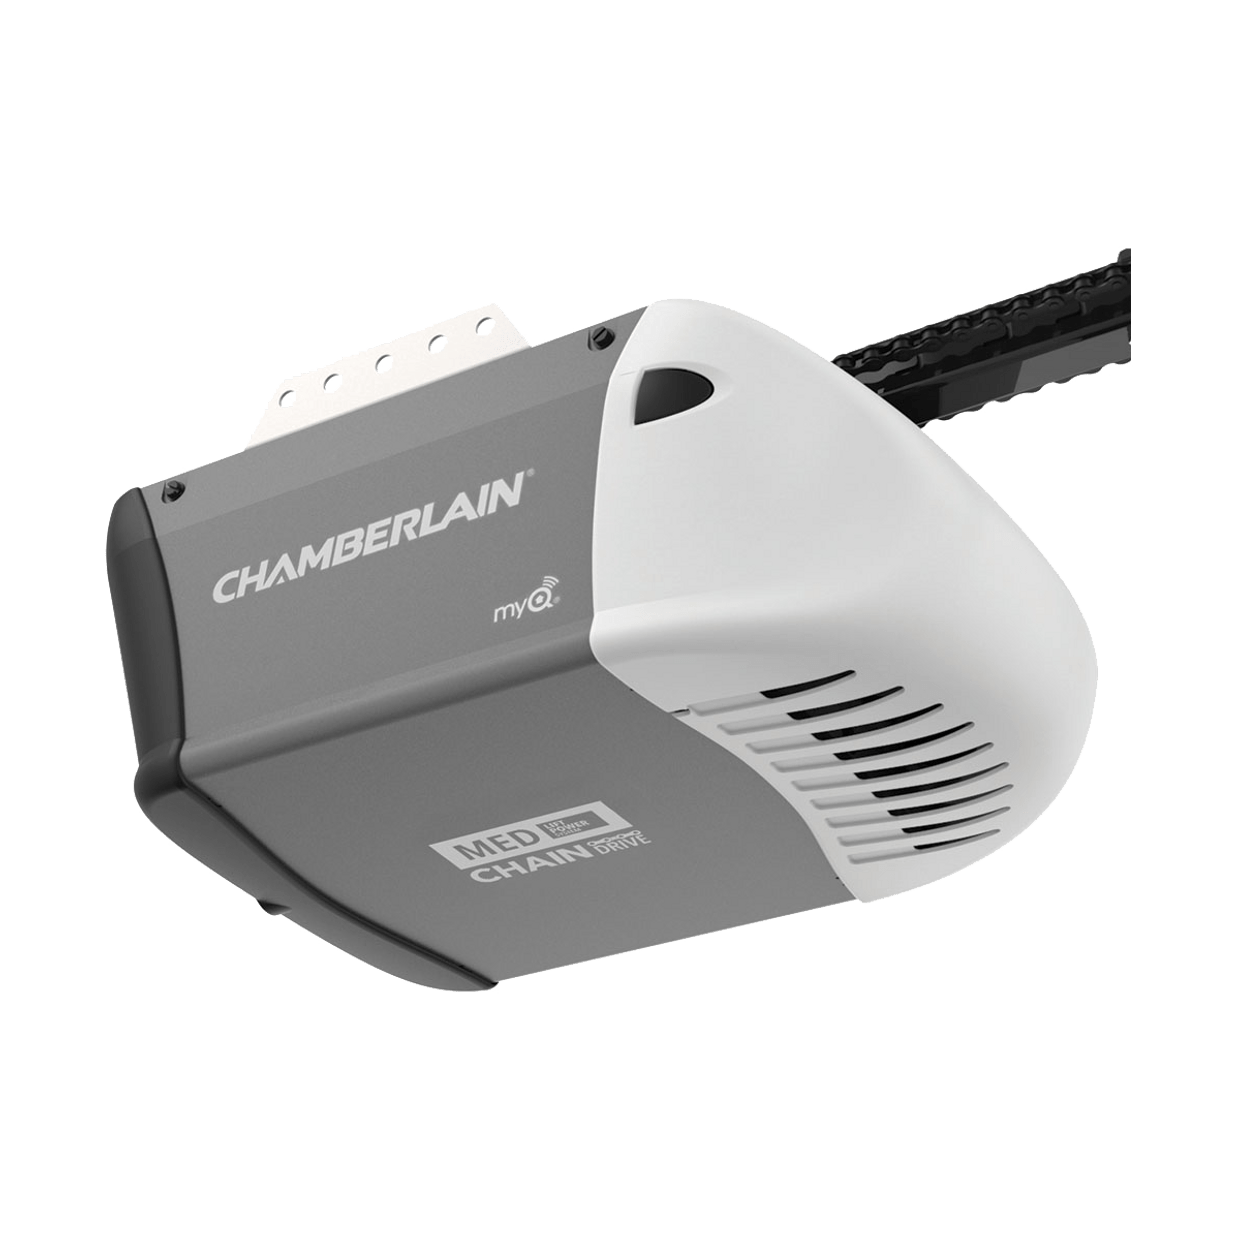 Garage Door Opener Installation Kit Chain Drive Garage Door Openers Chamberlain Chamberlain